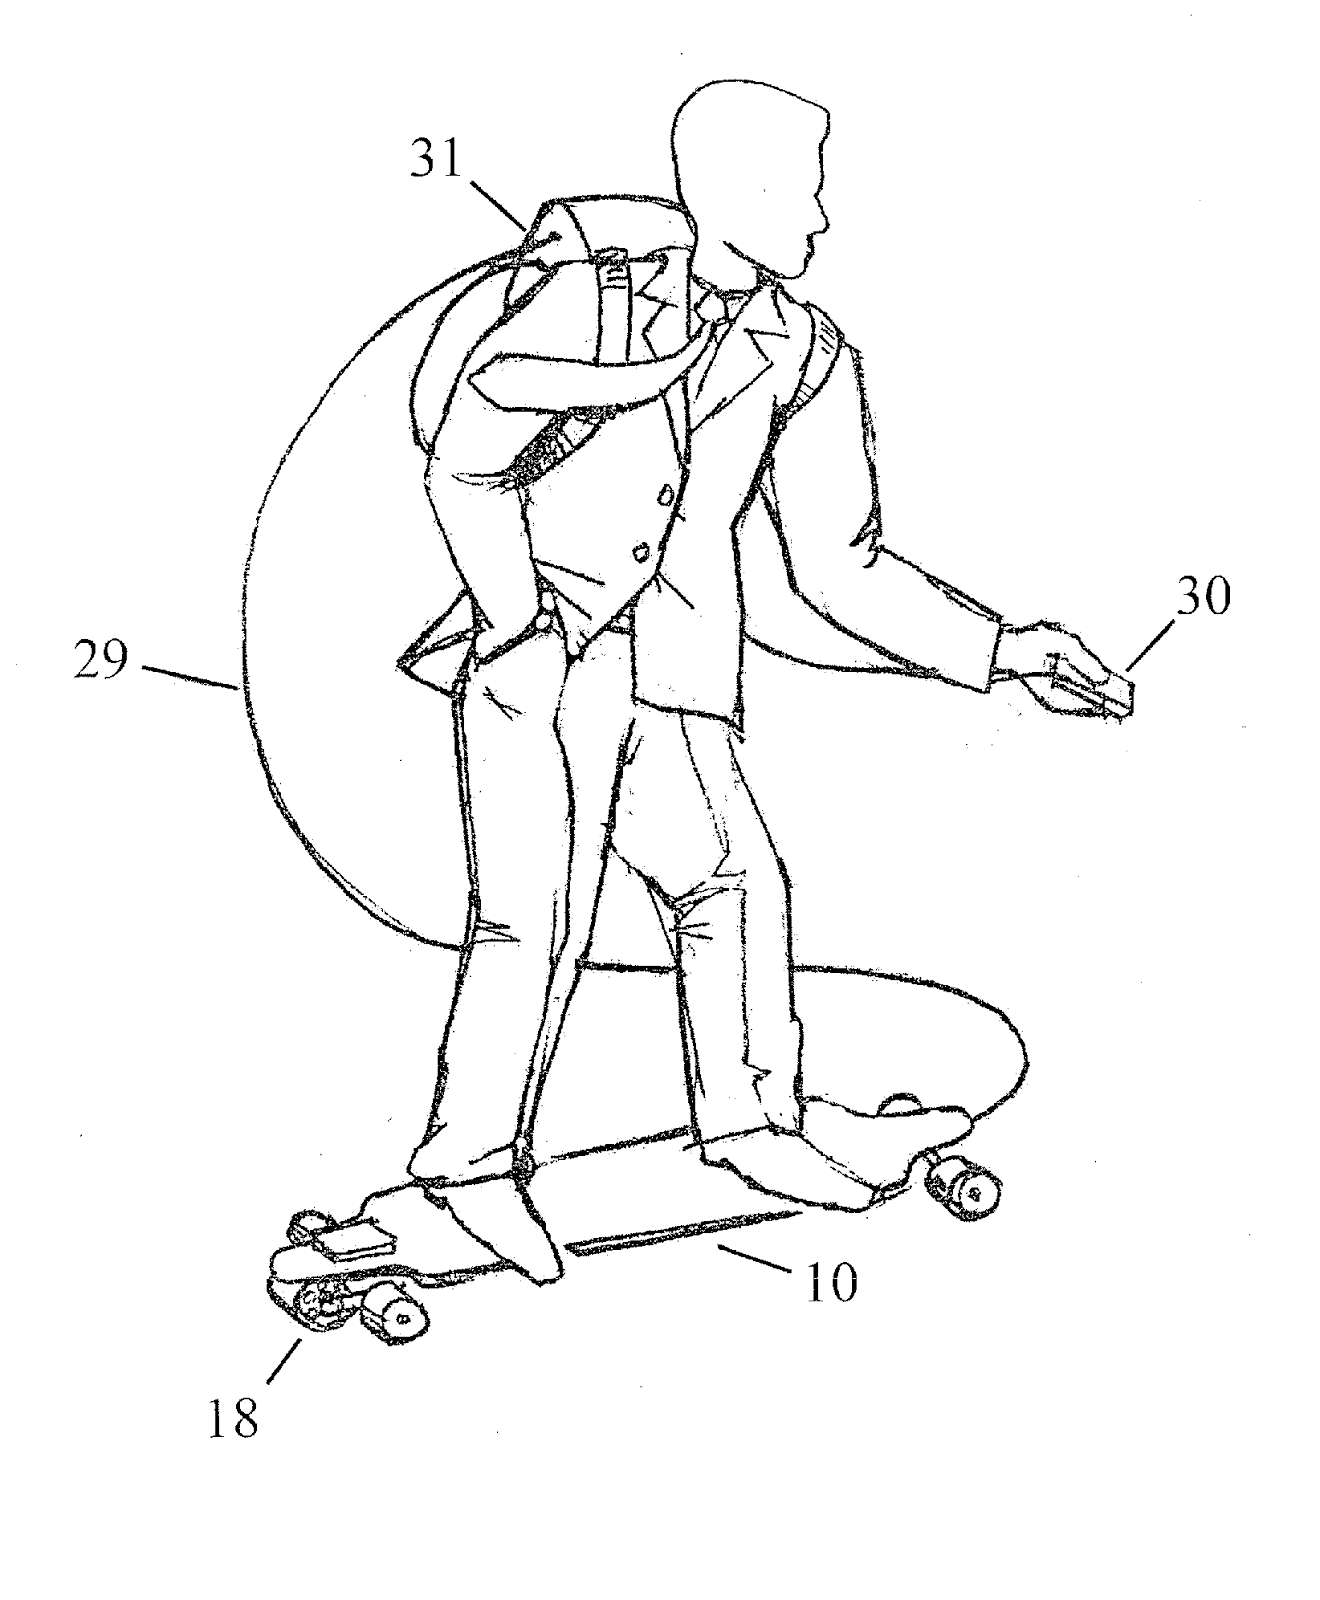 THE PATENT SEARCH BLOG: Skateboard inventions with a difference